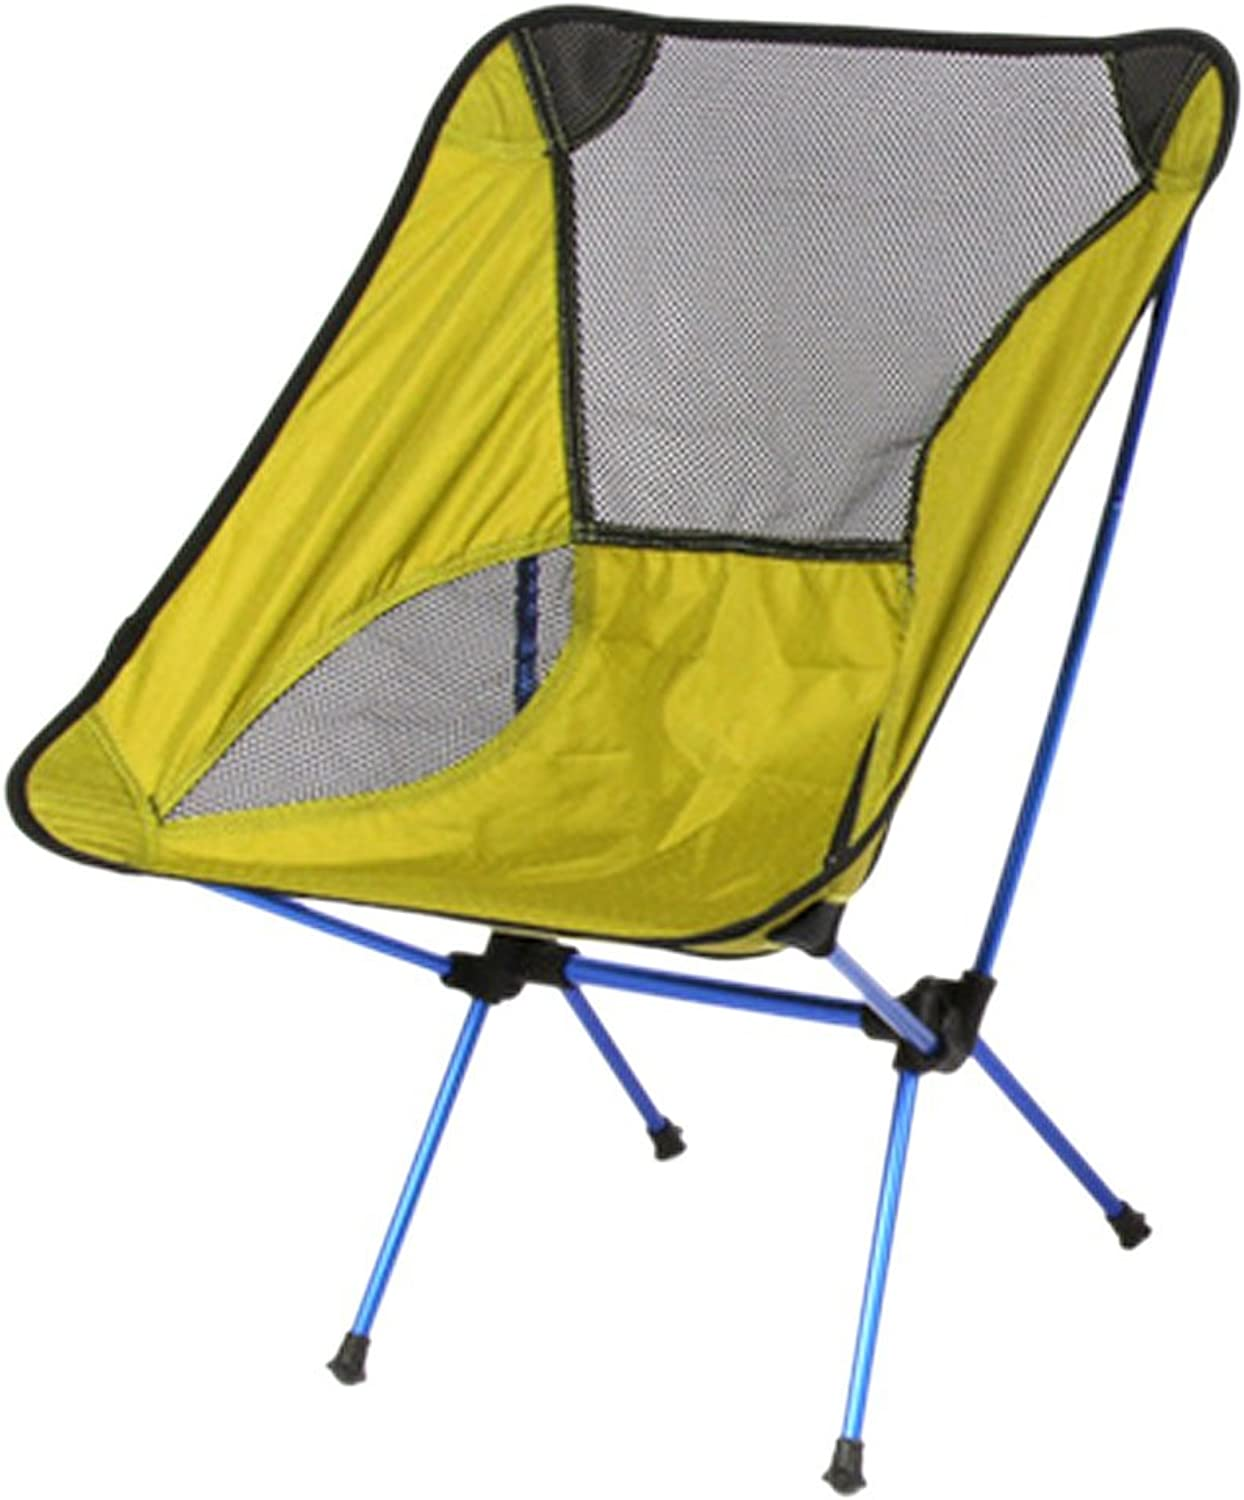 Ezyoutdoor Walkstool Compact Stool Portable Folding Chair with Case for Bivouac, Travel, Camping, Fishing,Hiking,Sports Travel Photography Backpacking with Very High Quality (Green)